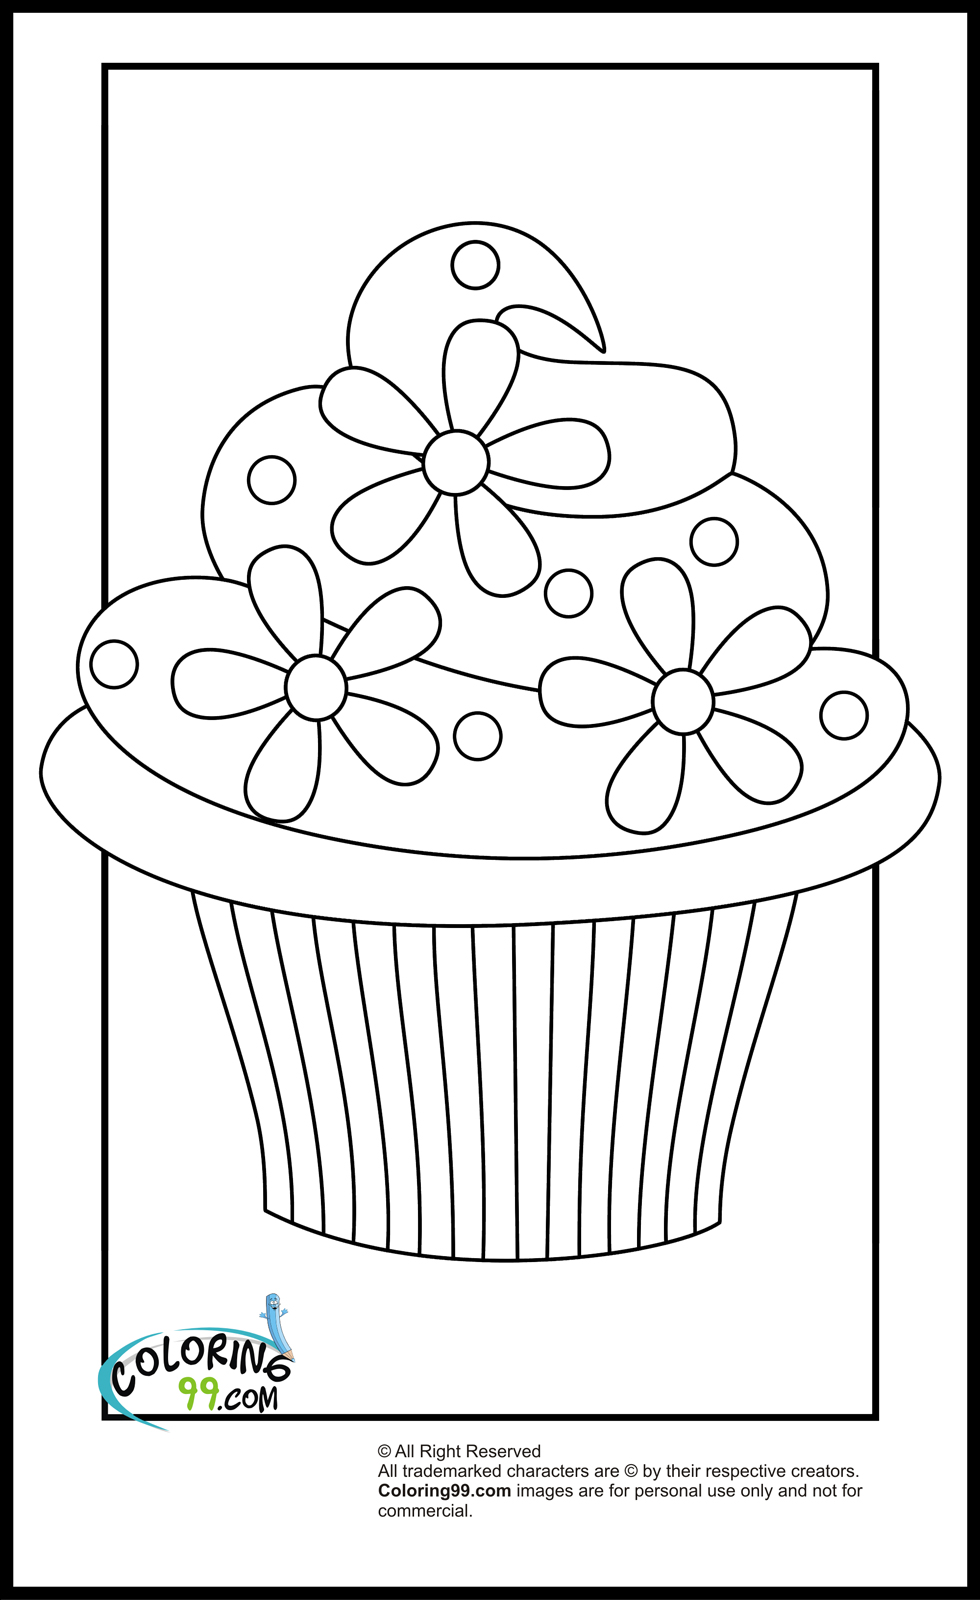 Cupcake Coloring Pages   Minister Coloring   non printable coloring pages online free